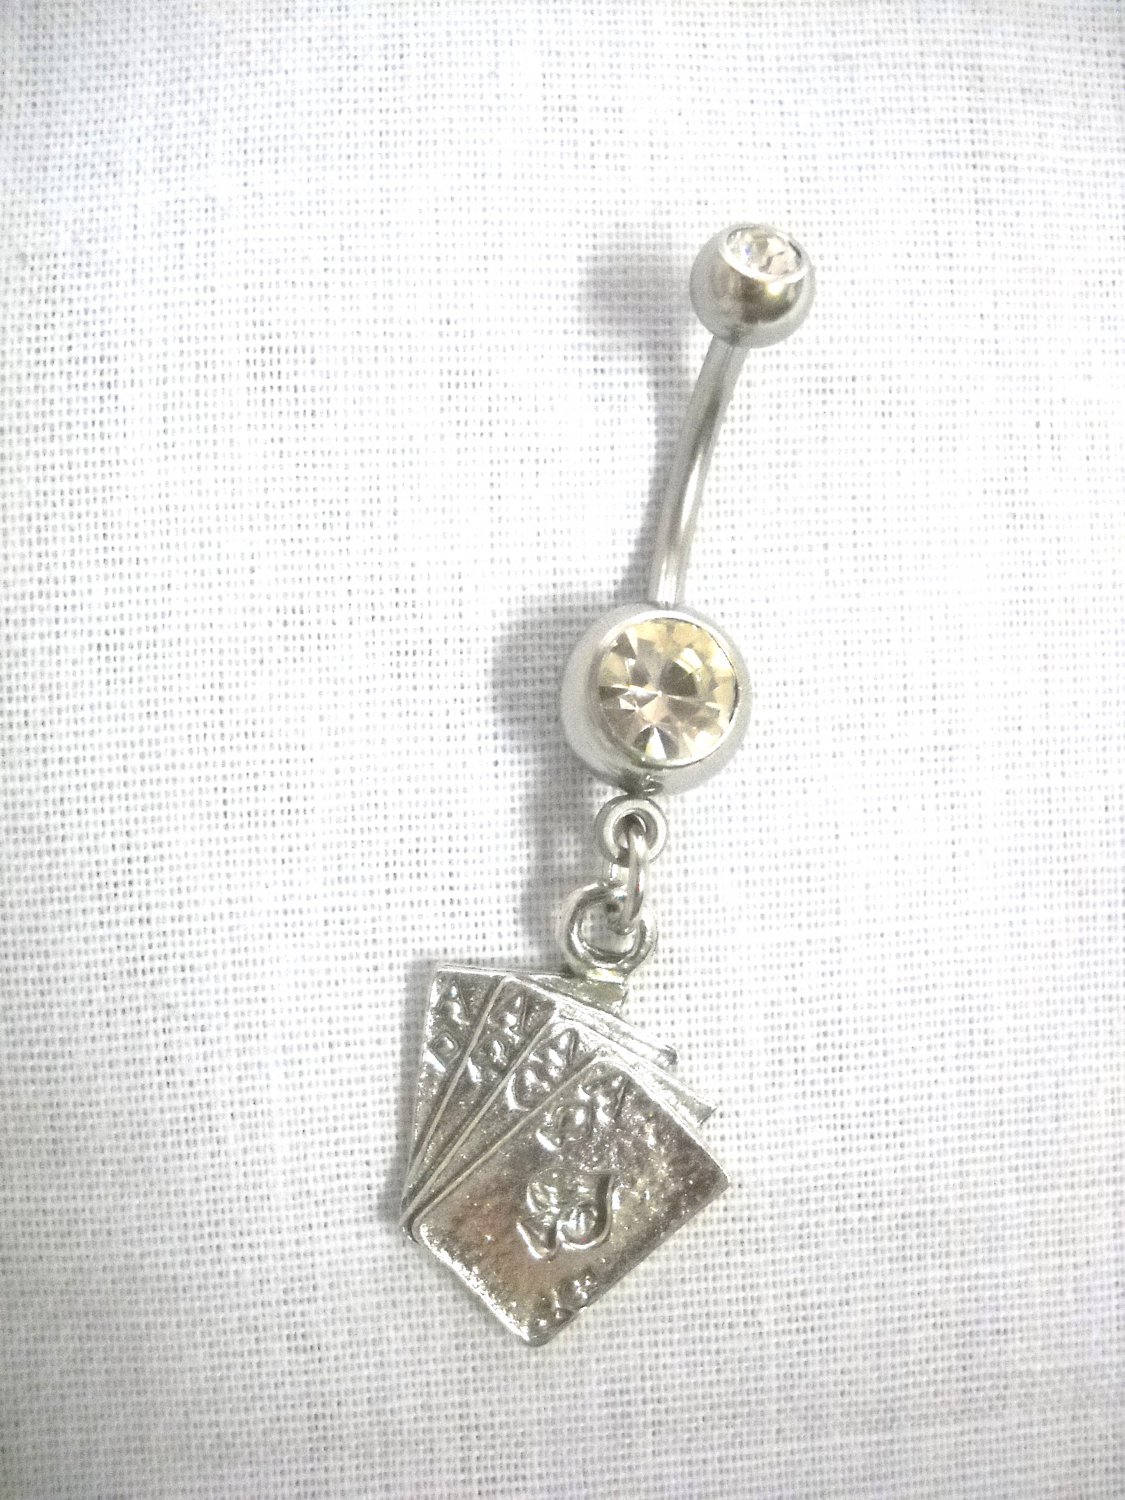 GAMBLER 4 OF A KIND ACES HIGH CARD HAND VEGAS CHARM CZ NAVEL RING BARBELL